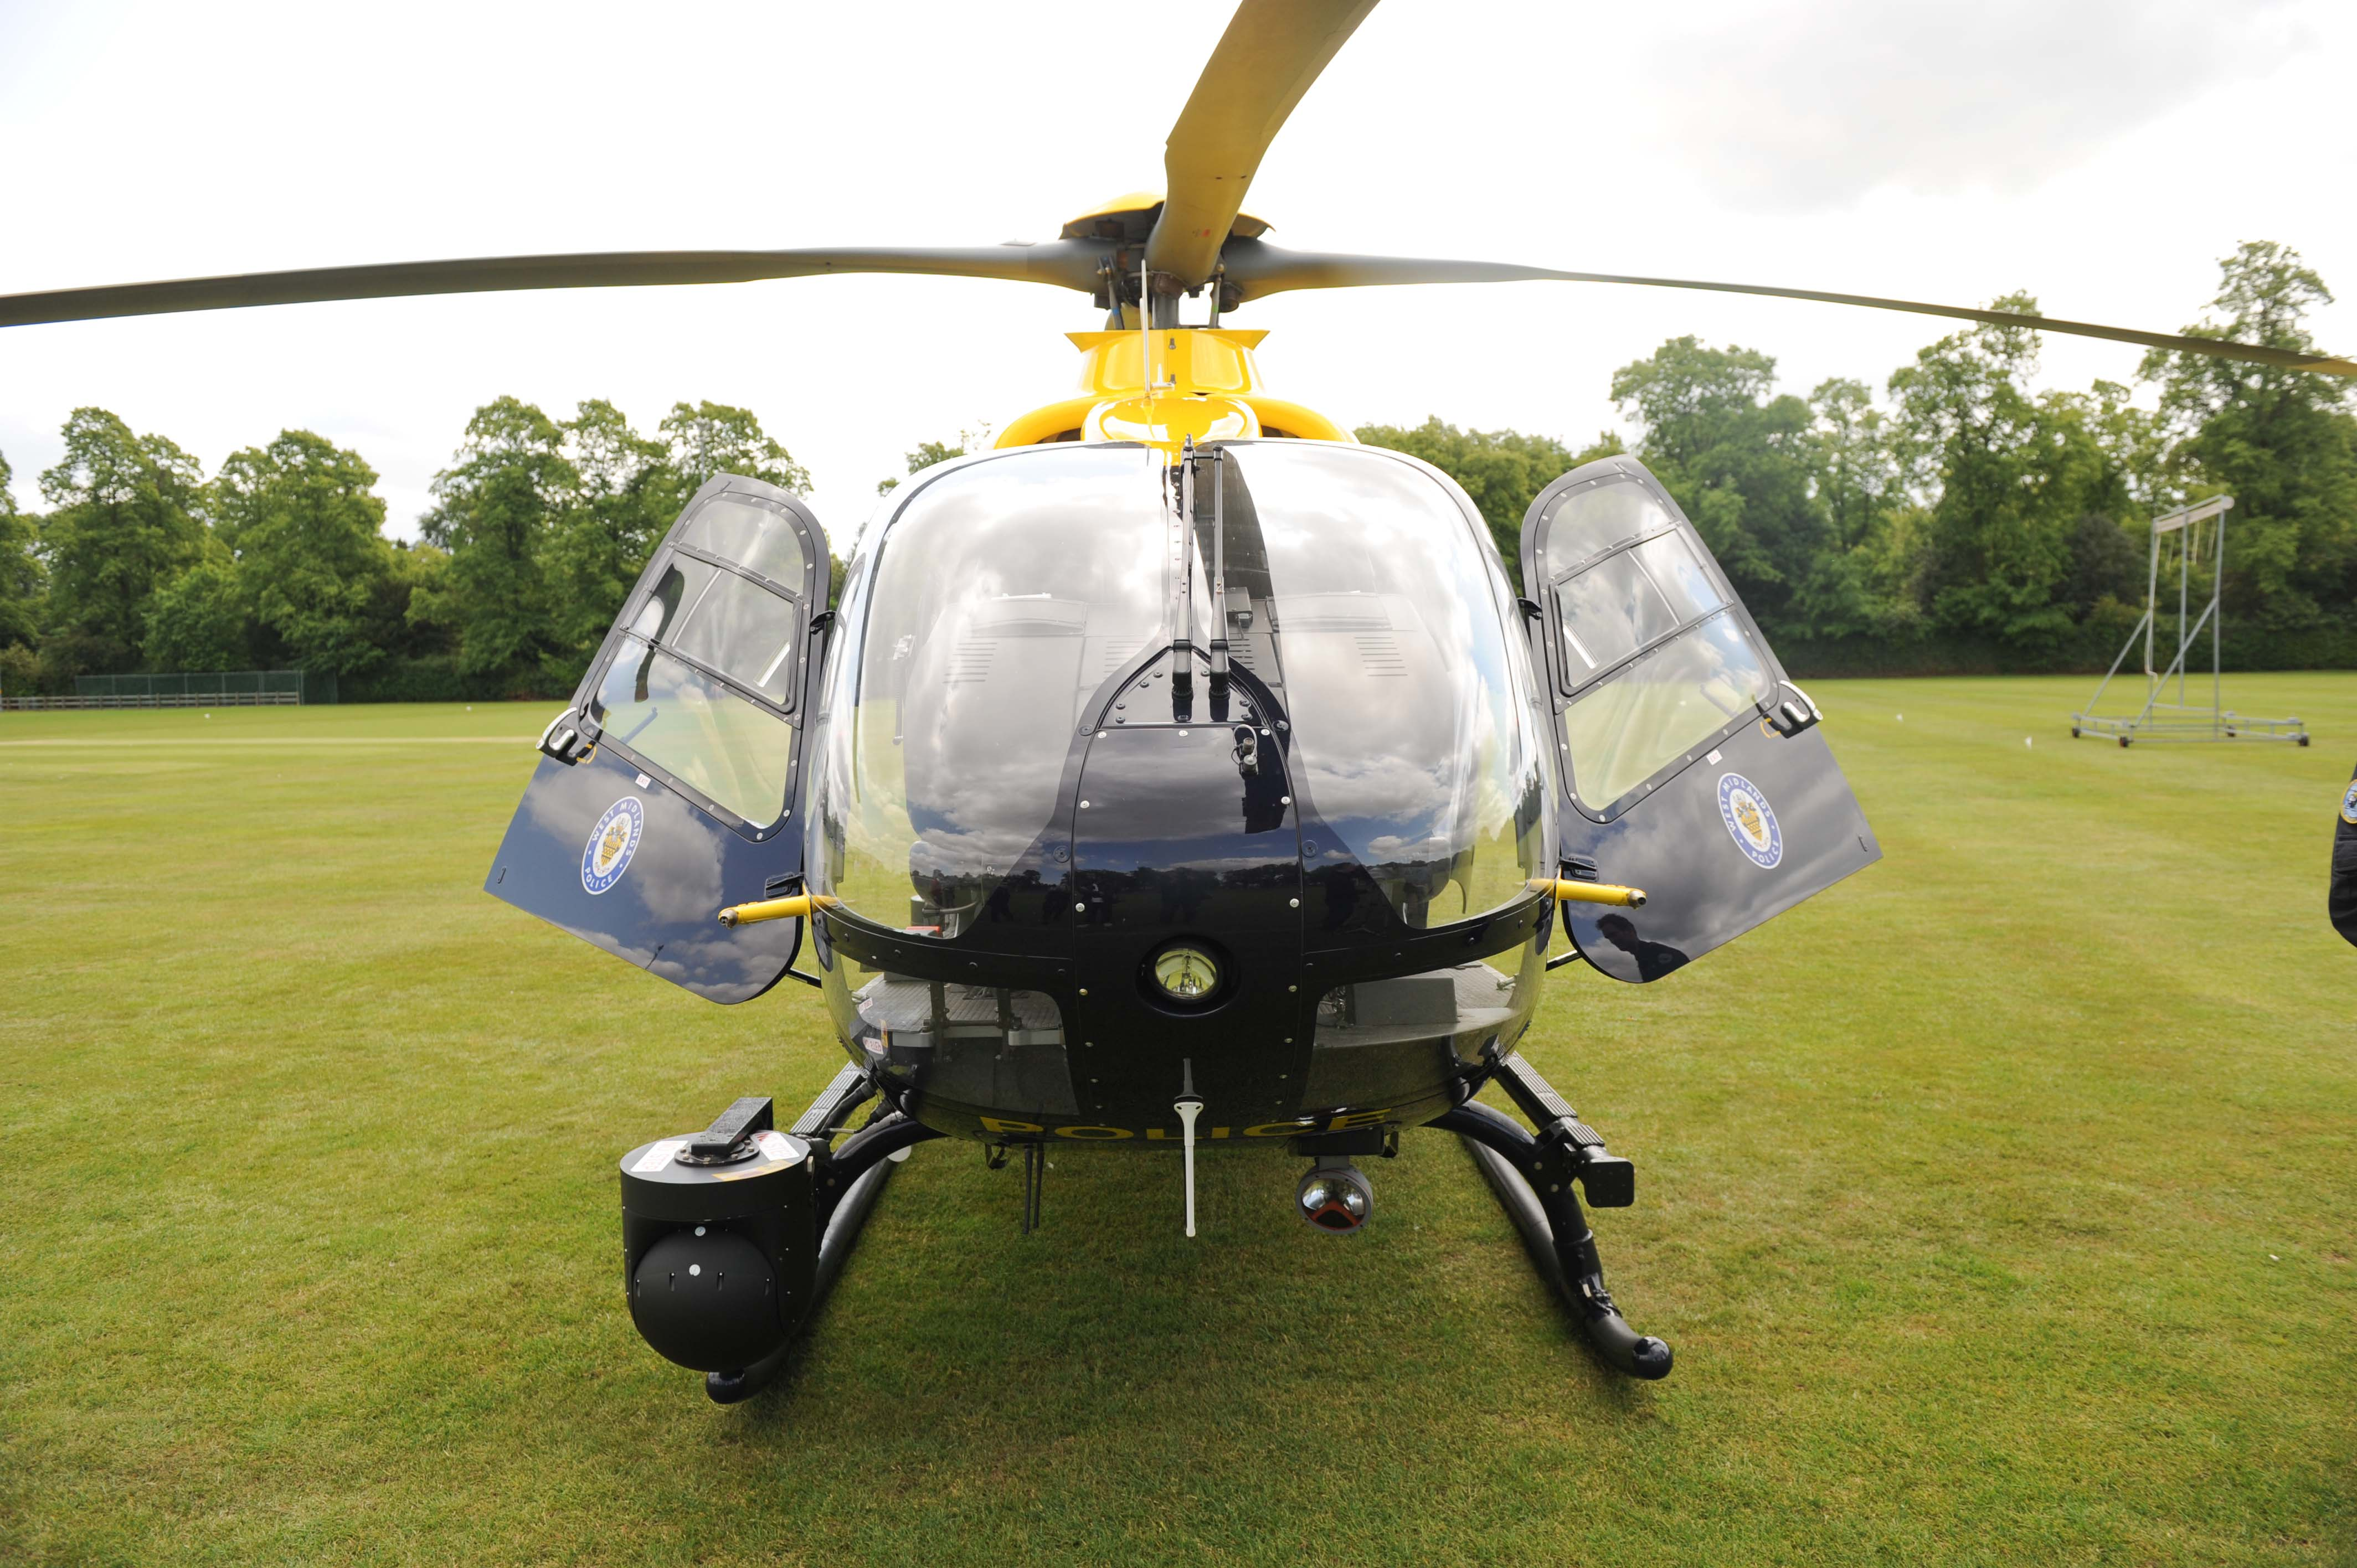 The world's most advanced police helicopter